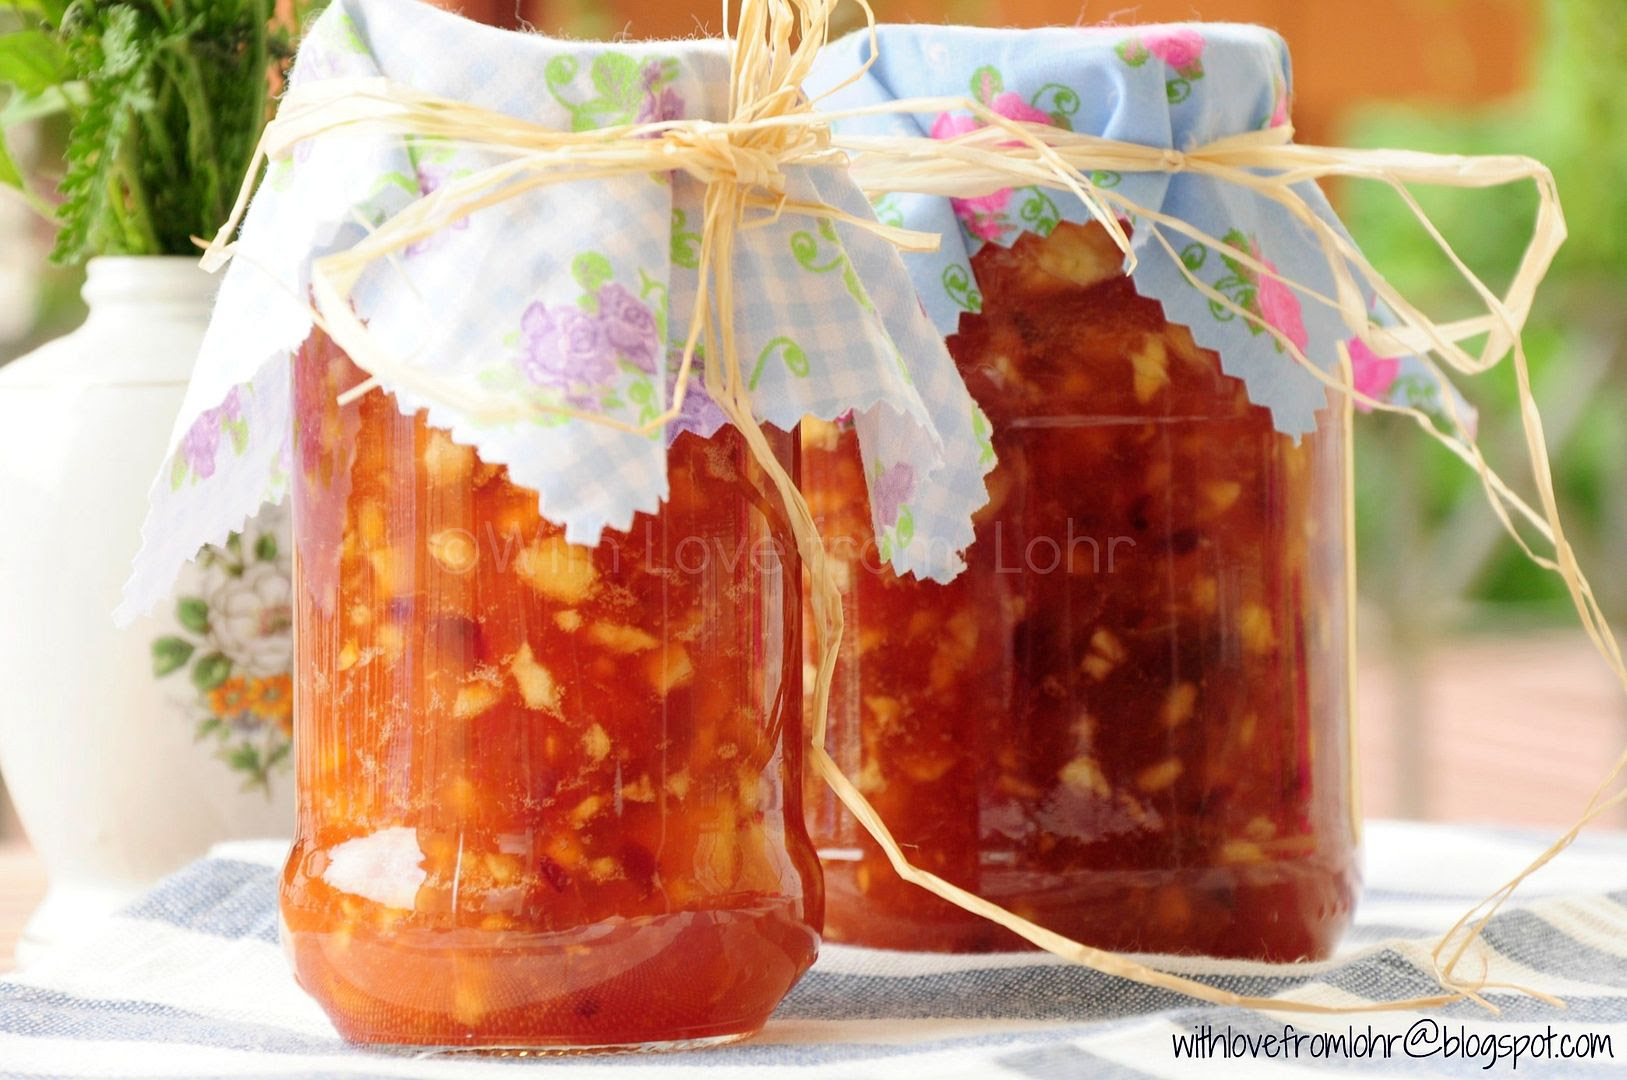 10.07.12, Home made confiture, anyone??